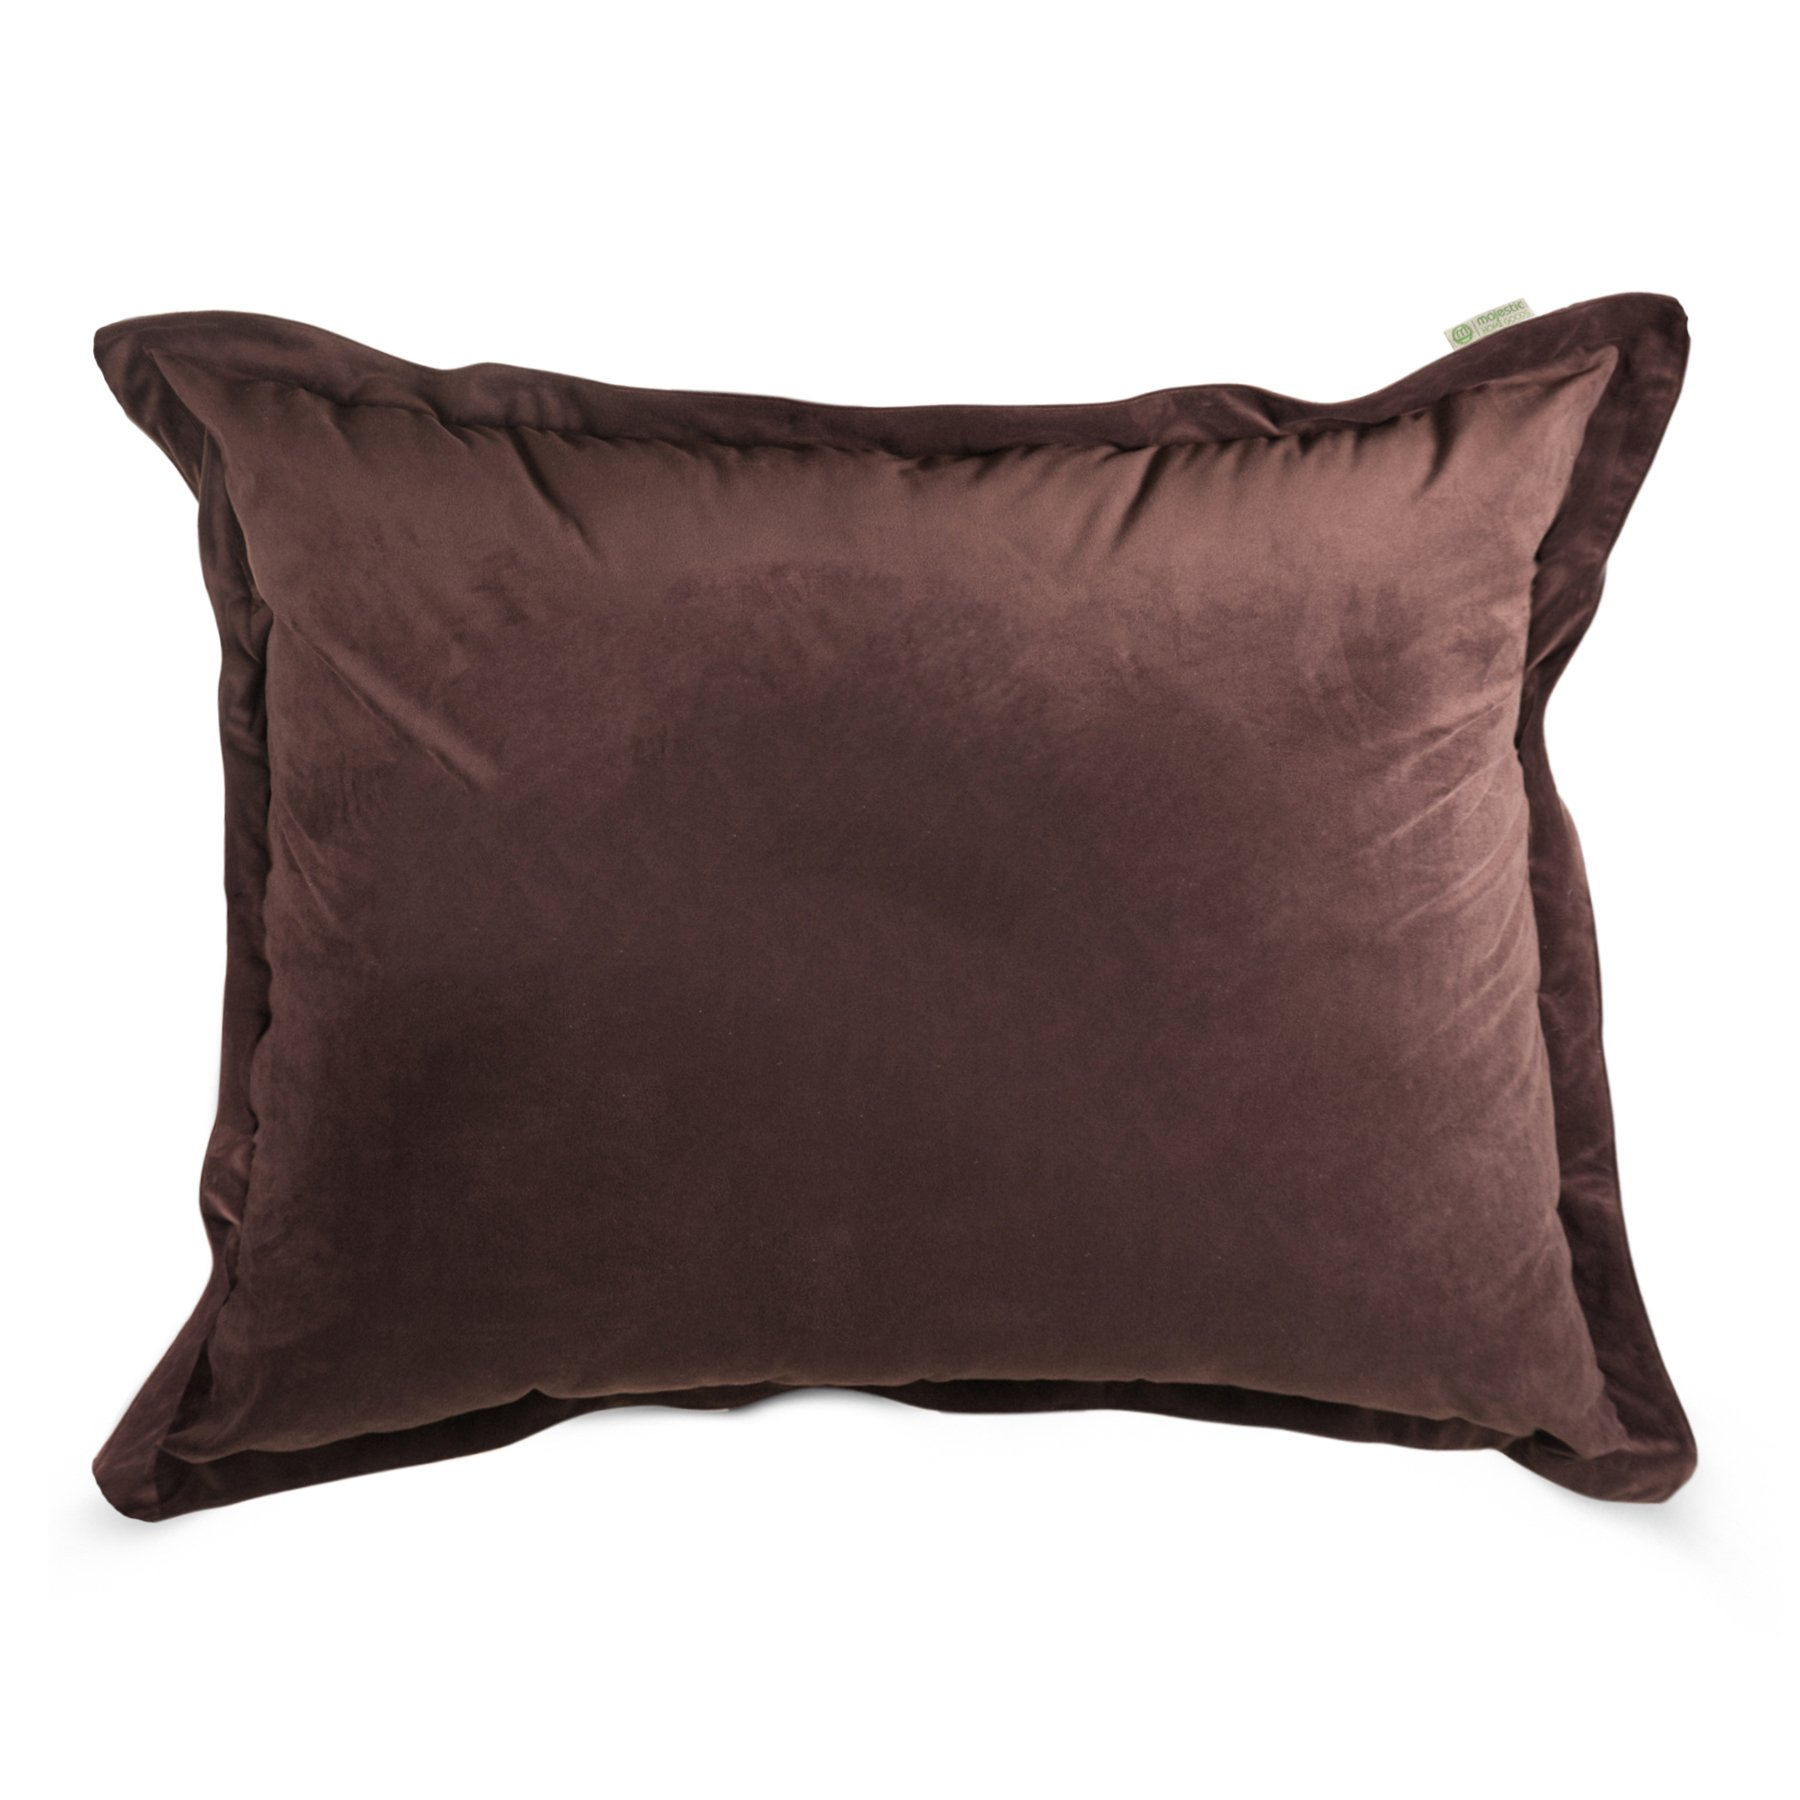 Majestic Home Goods Faux Suede Floor Pillow, Dark Brown by Majestic Home Goods